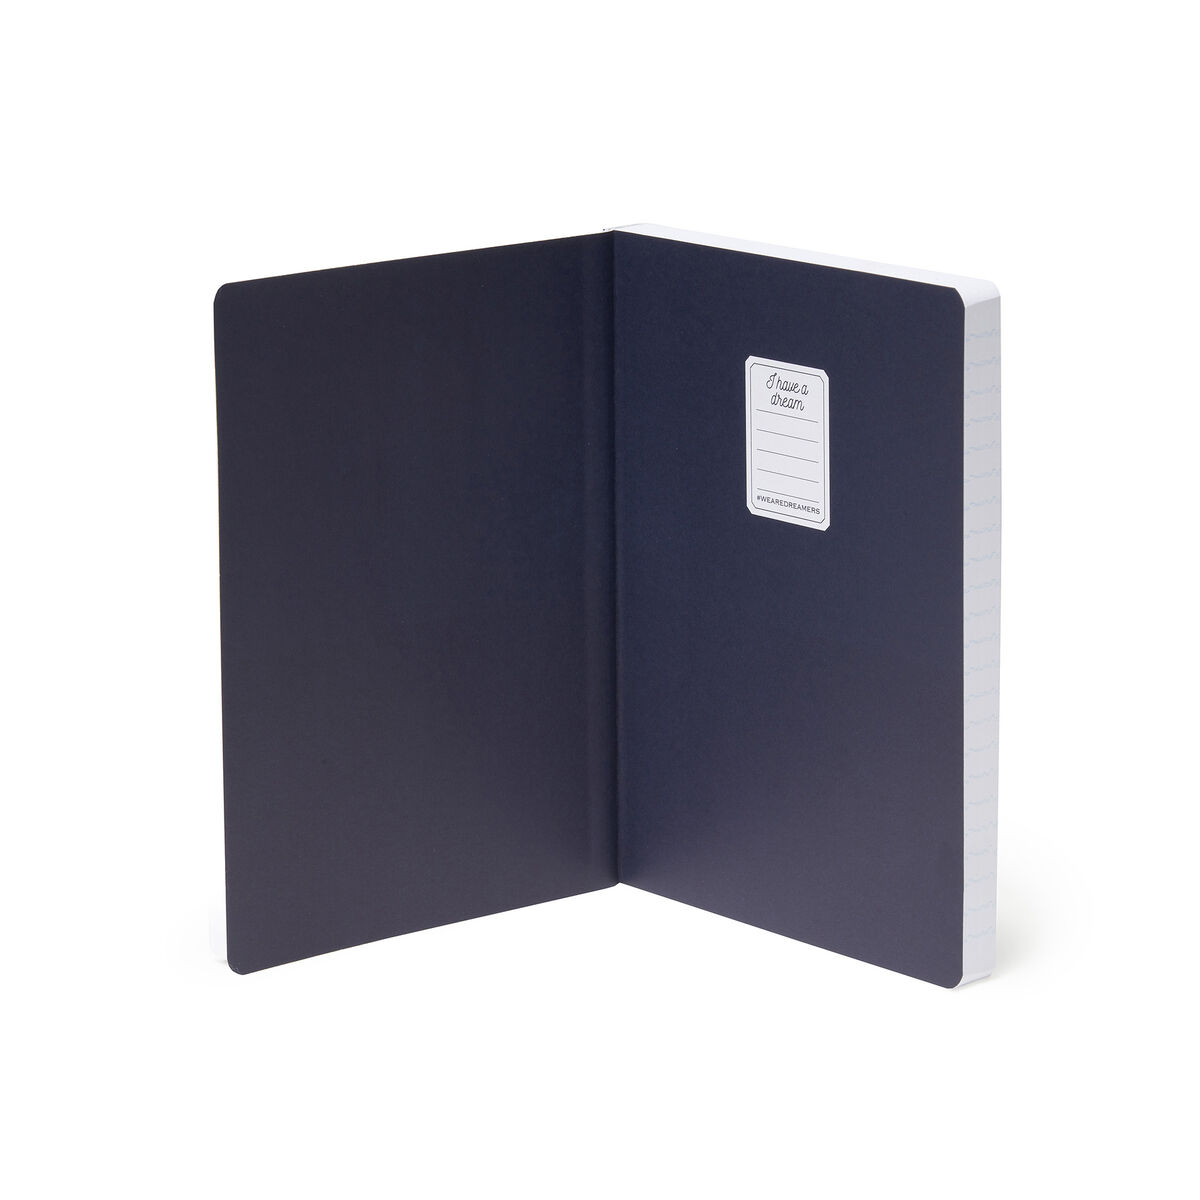 Notebook - Medium, , zoo